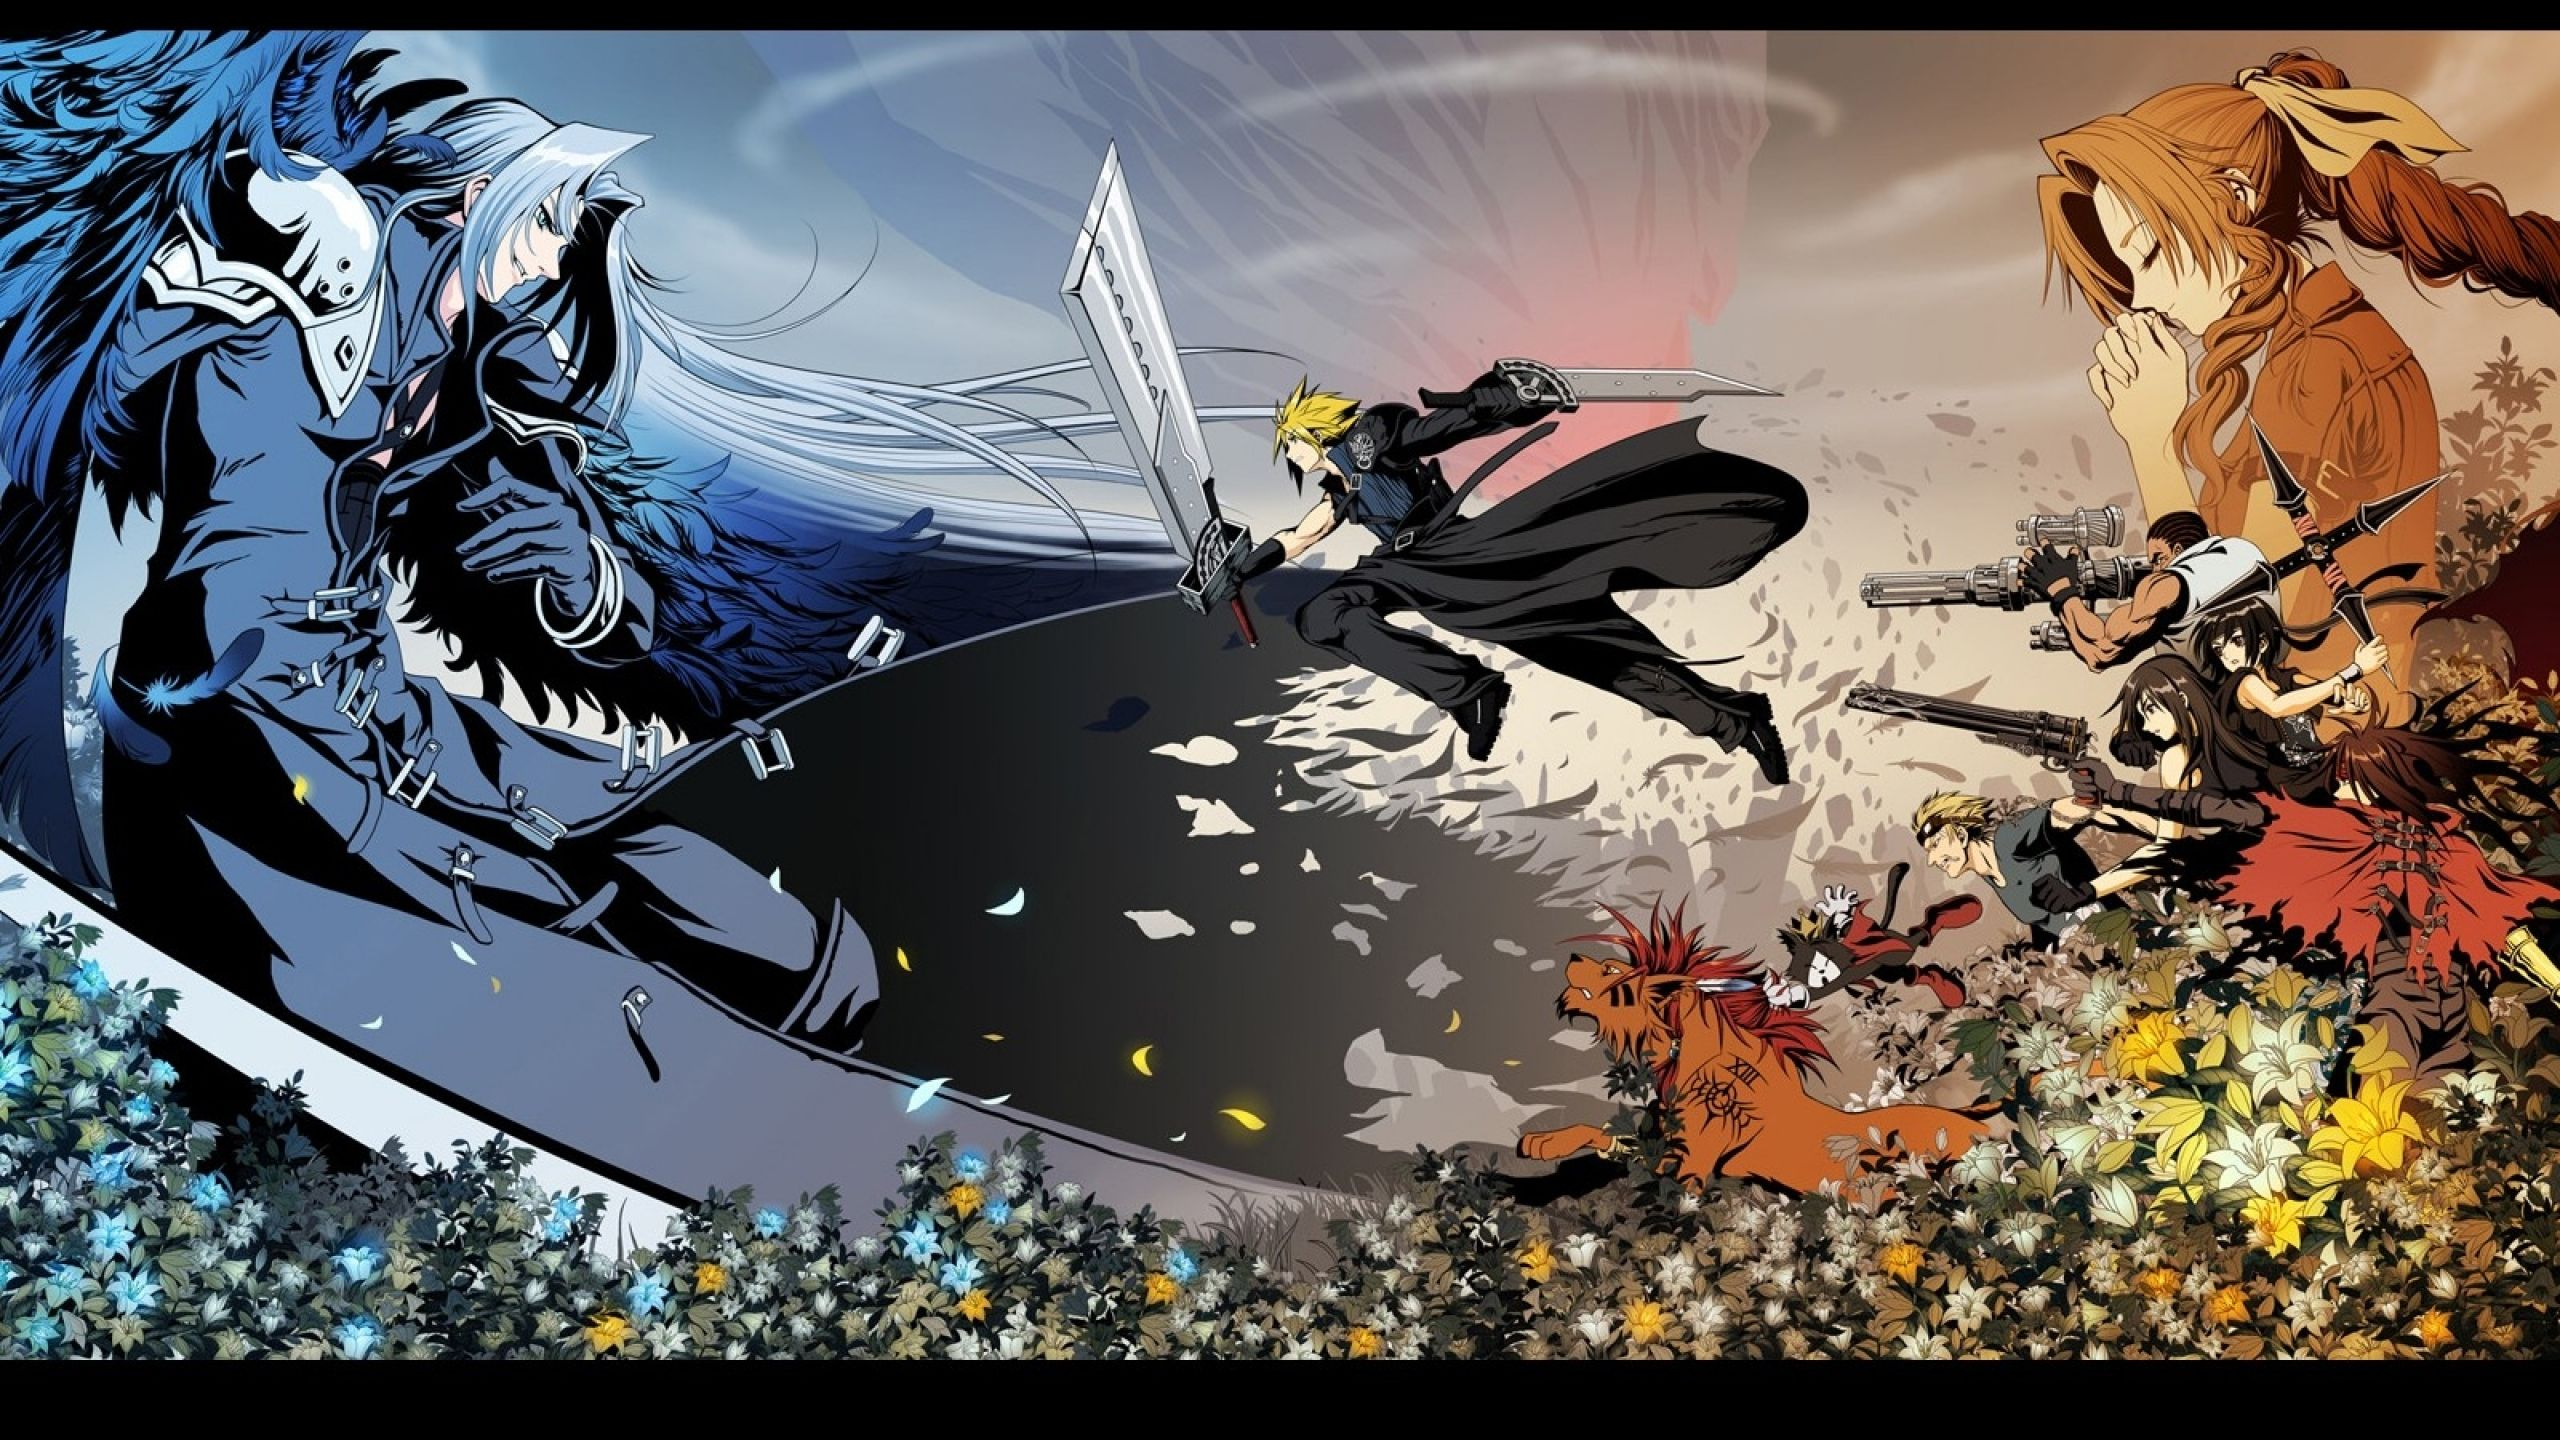 Pin by mark on hd wallpapers pinterest final fantasy hd final fantasy vii gaming wallpapers fandom king children game advent finals hd wallpaper altavistaventures Image collections